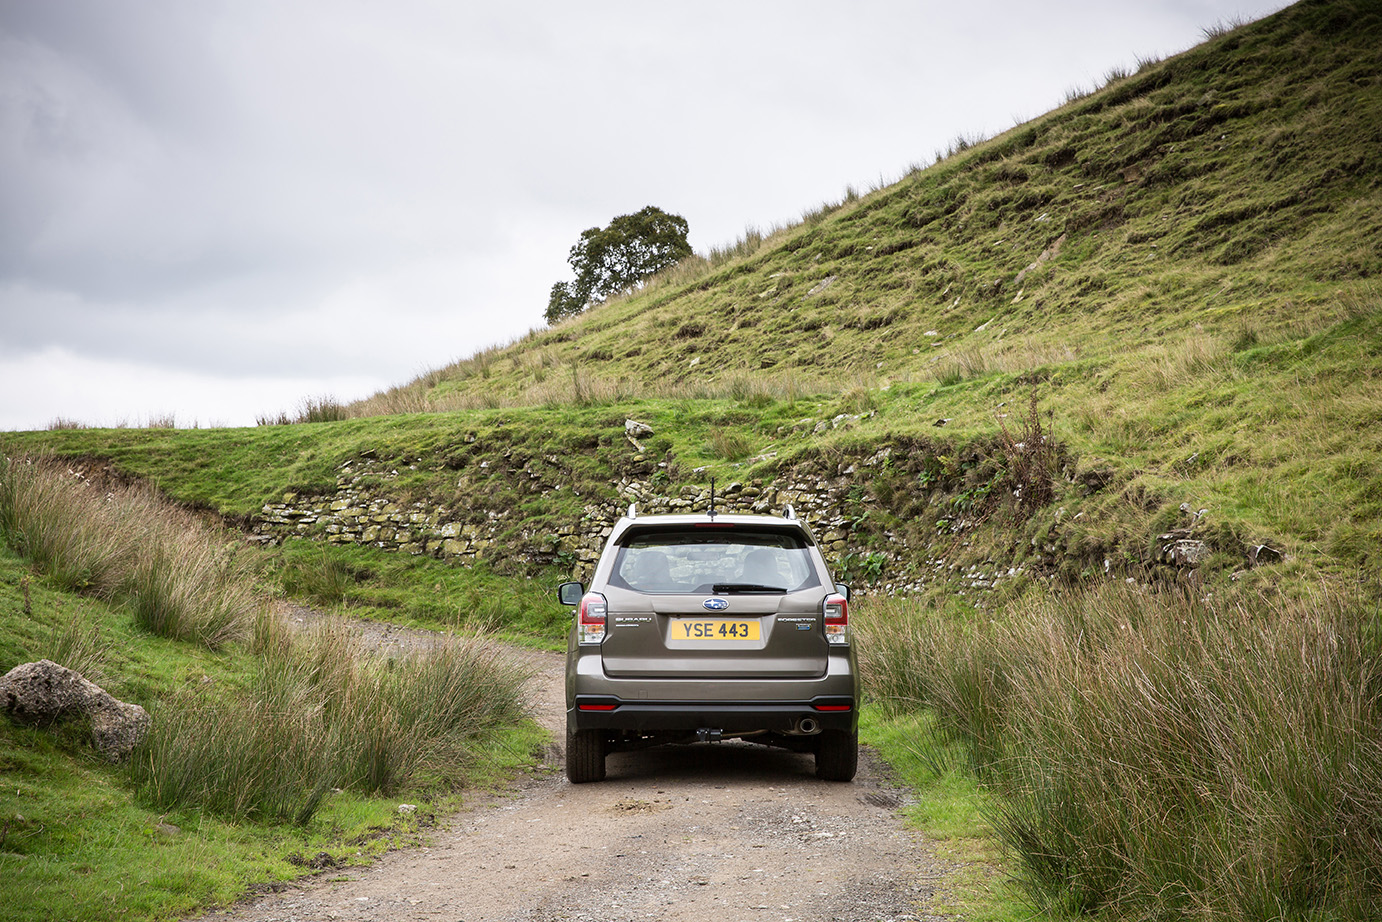 Country lanes are where the Outback thrives